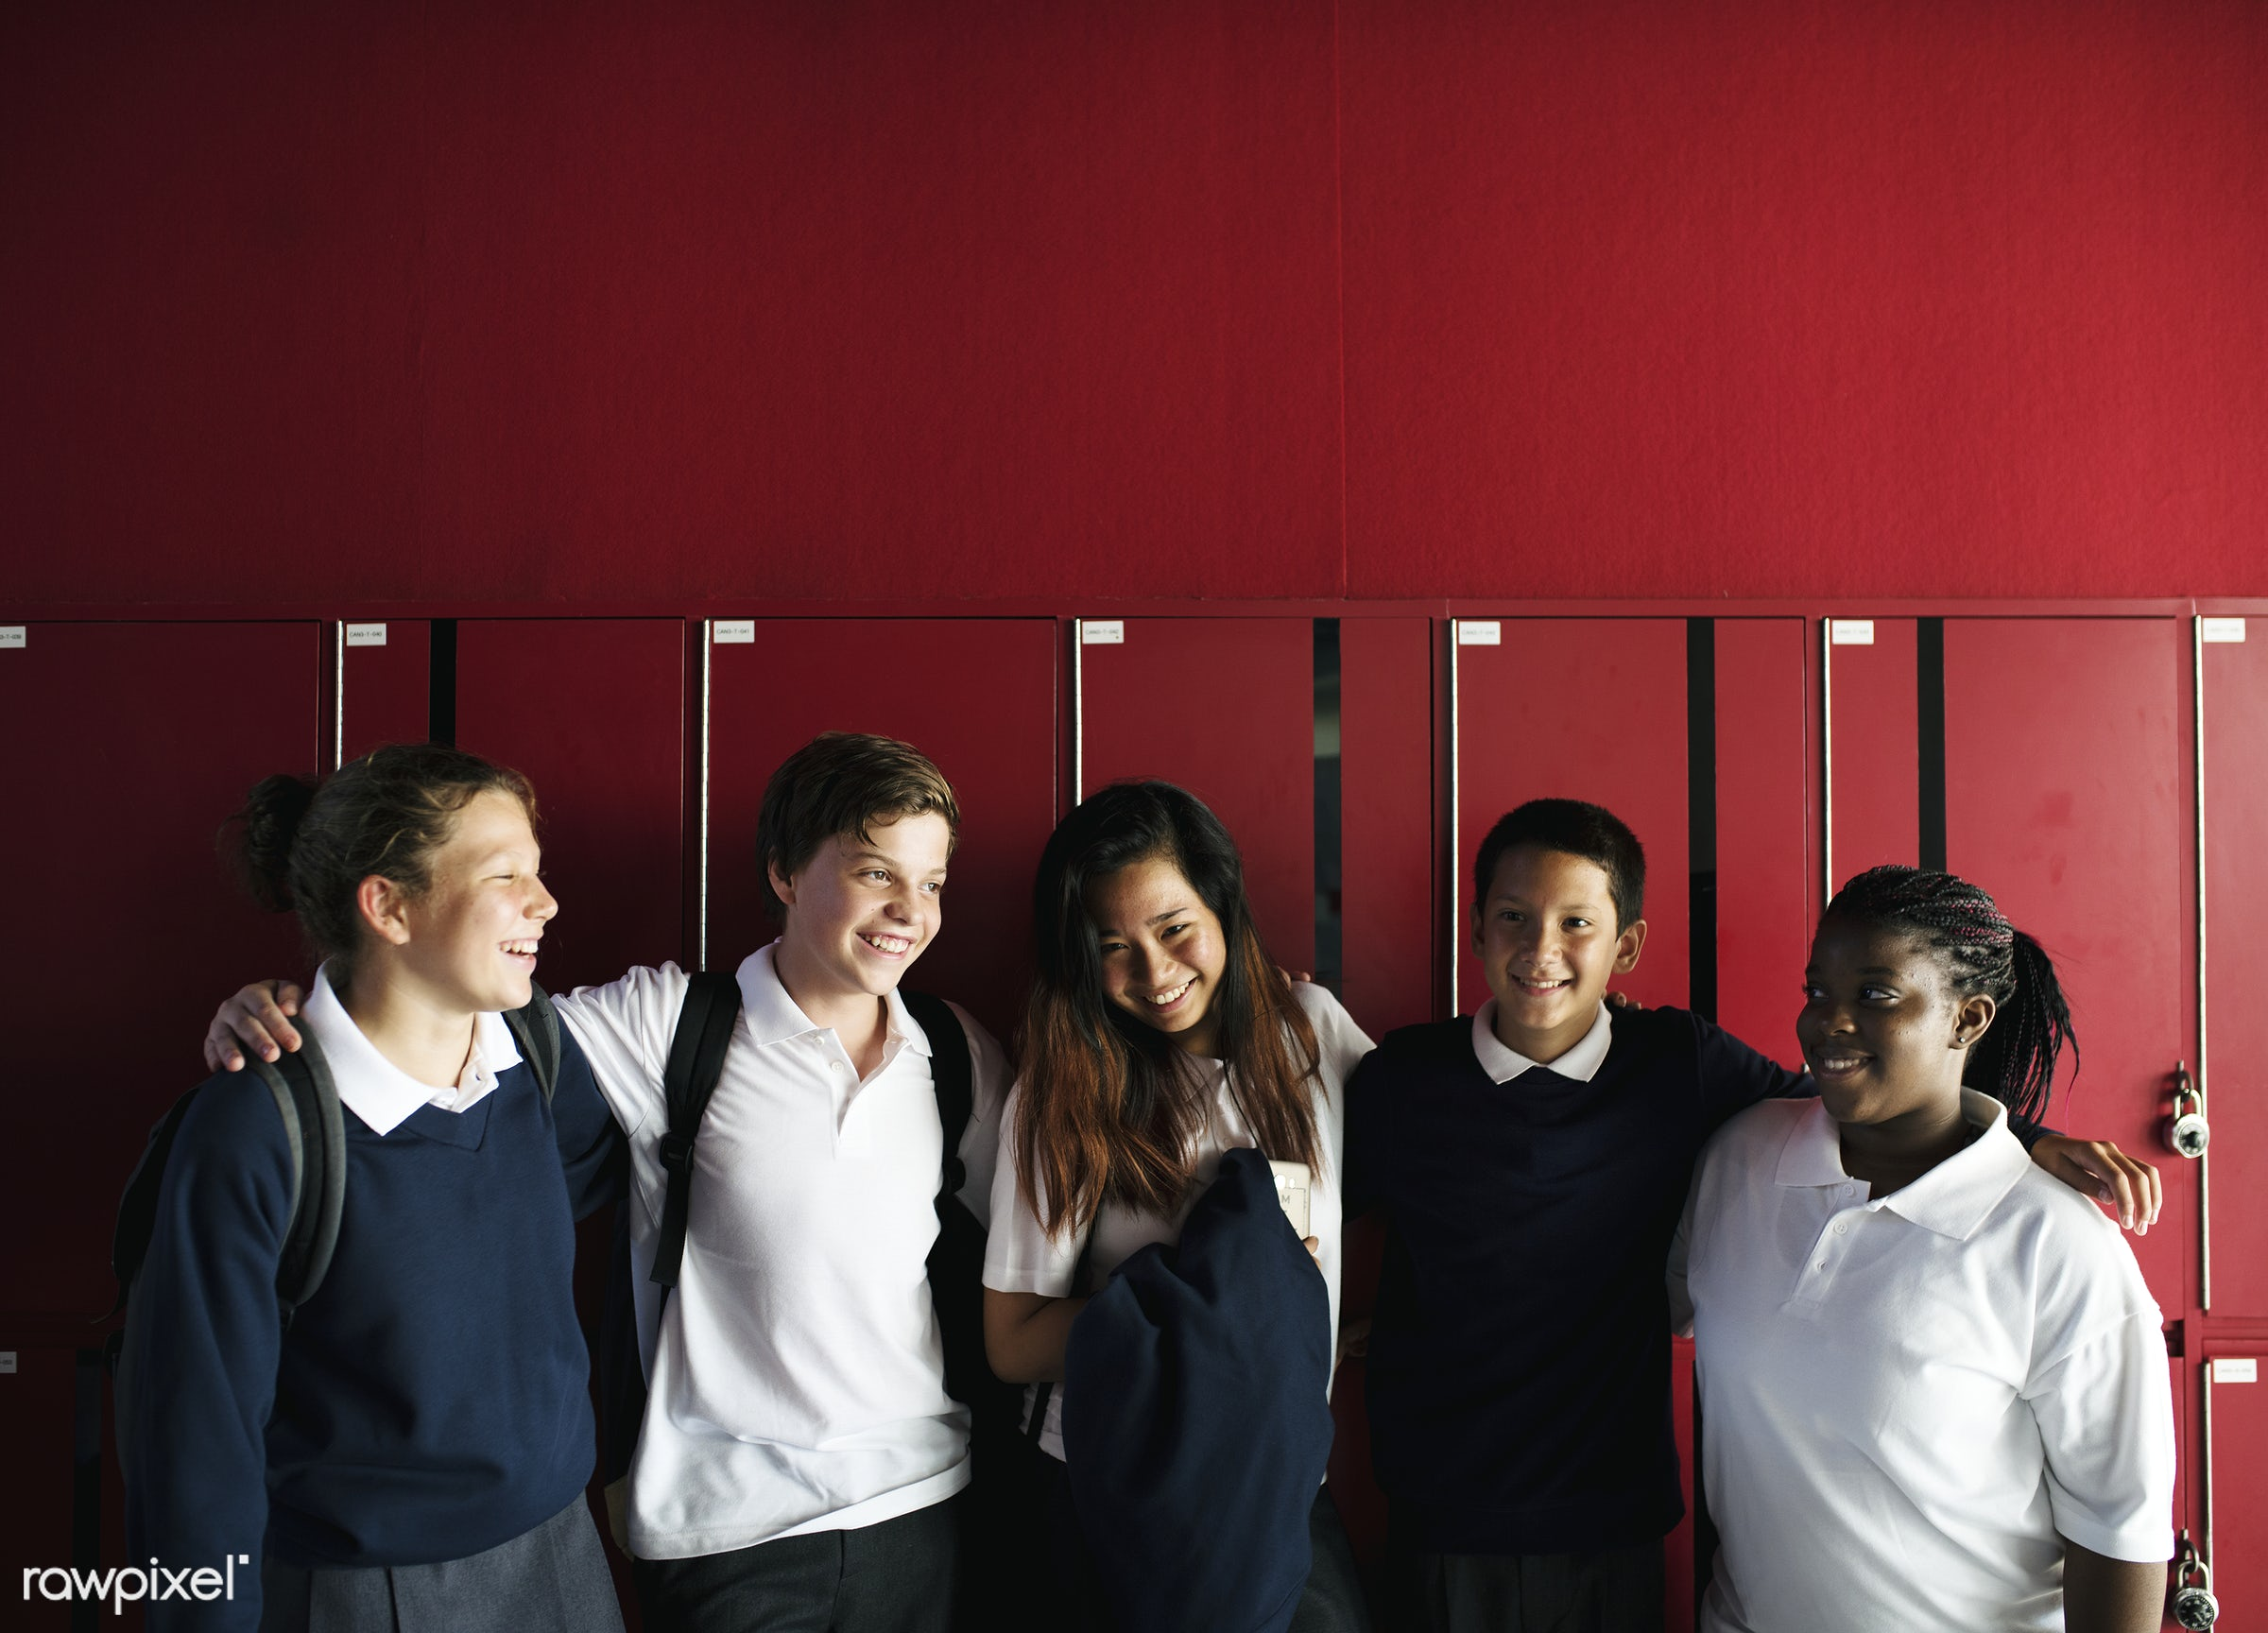 discussion, education, positivity, caucasian, academic, asian, girl, friends, lifestyle, smiling, lockers, students,...